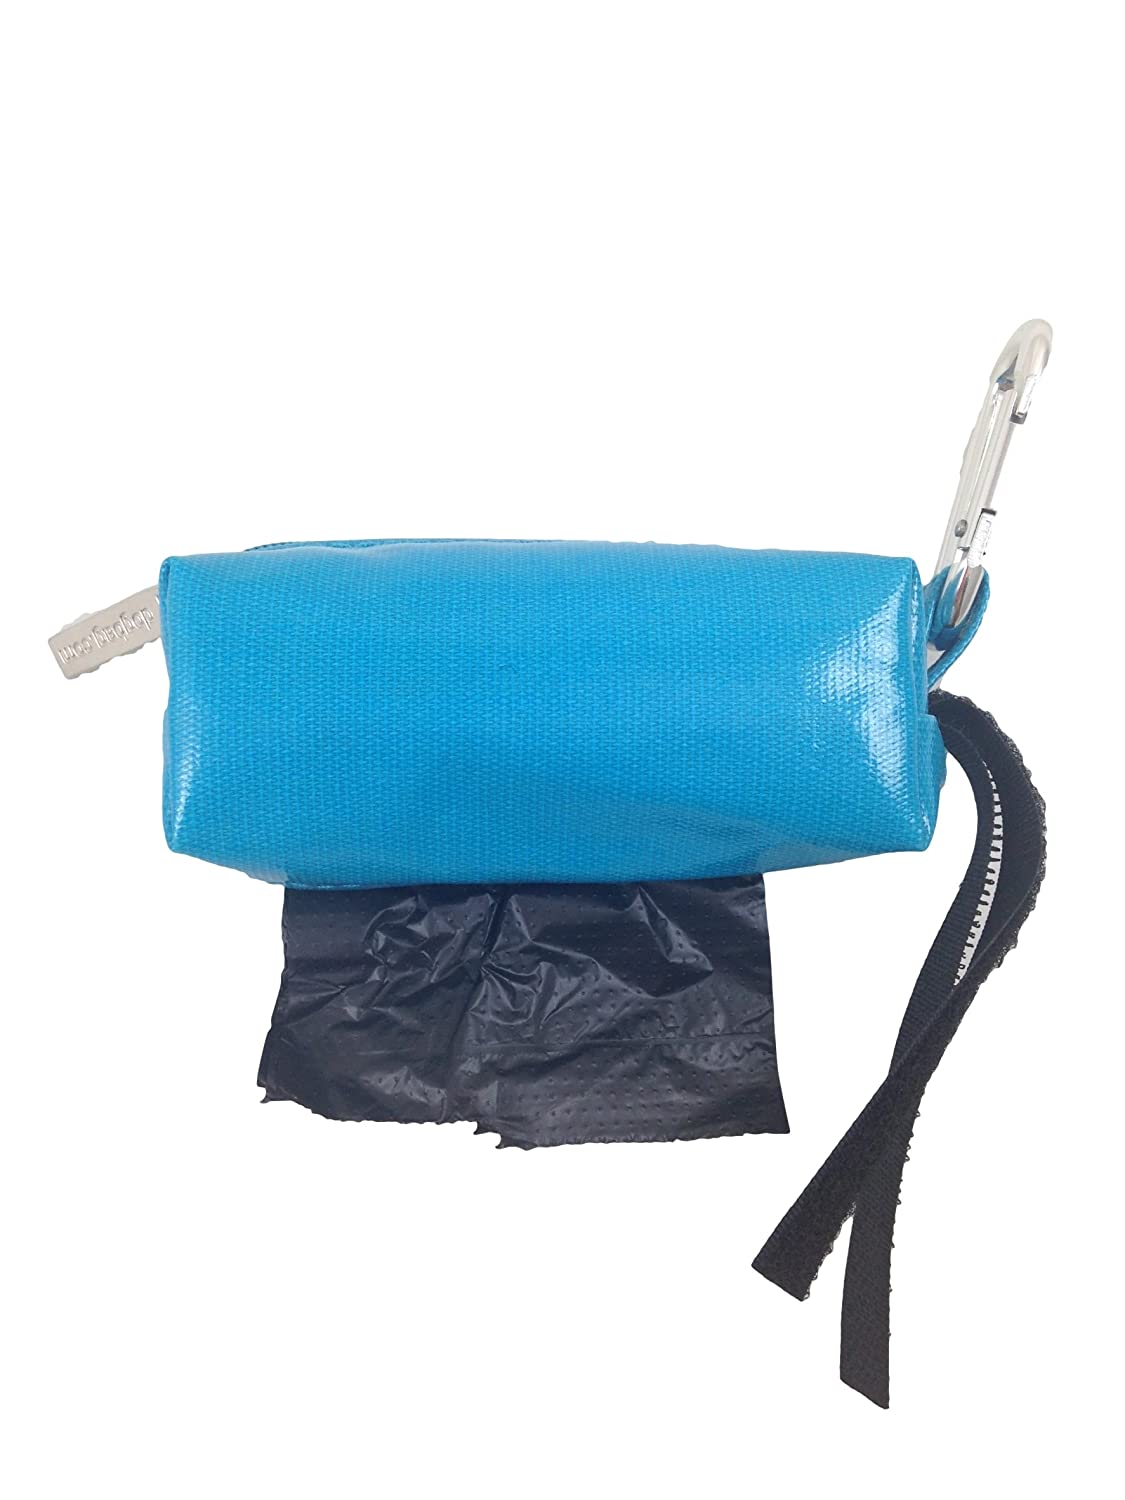 Doggie Walk Bags Duffel Bags for Dogs, Unscented, Solid Turquoise, Black